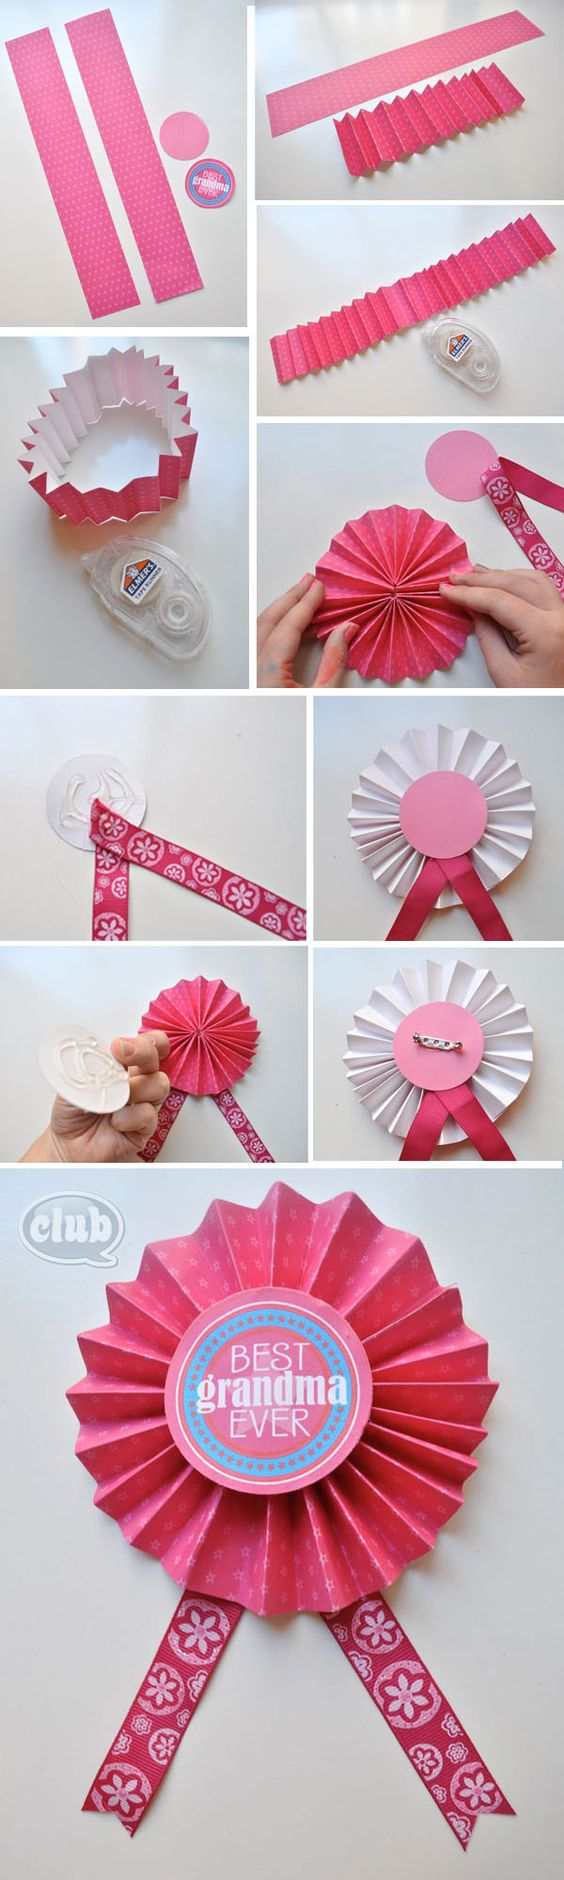 Step By Step Make Your Own Medal Perfect For Mothers